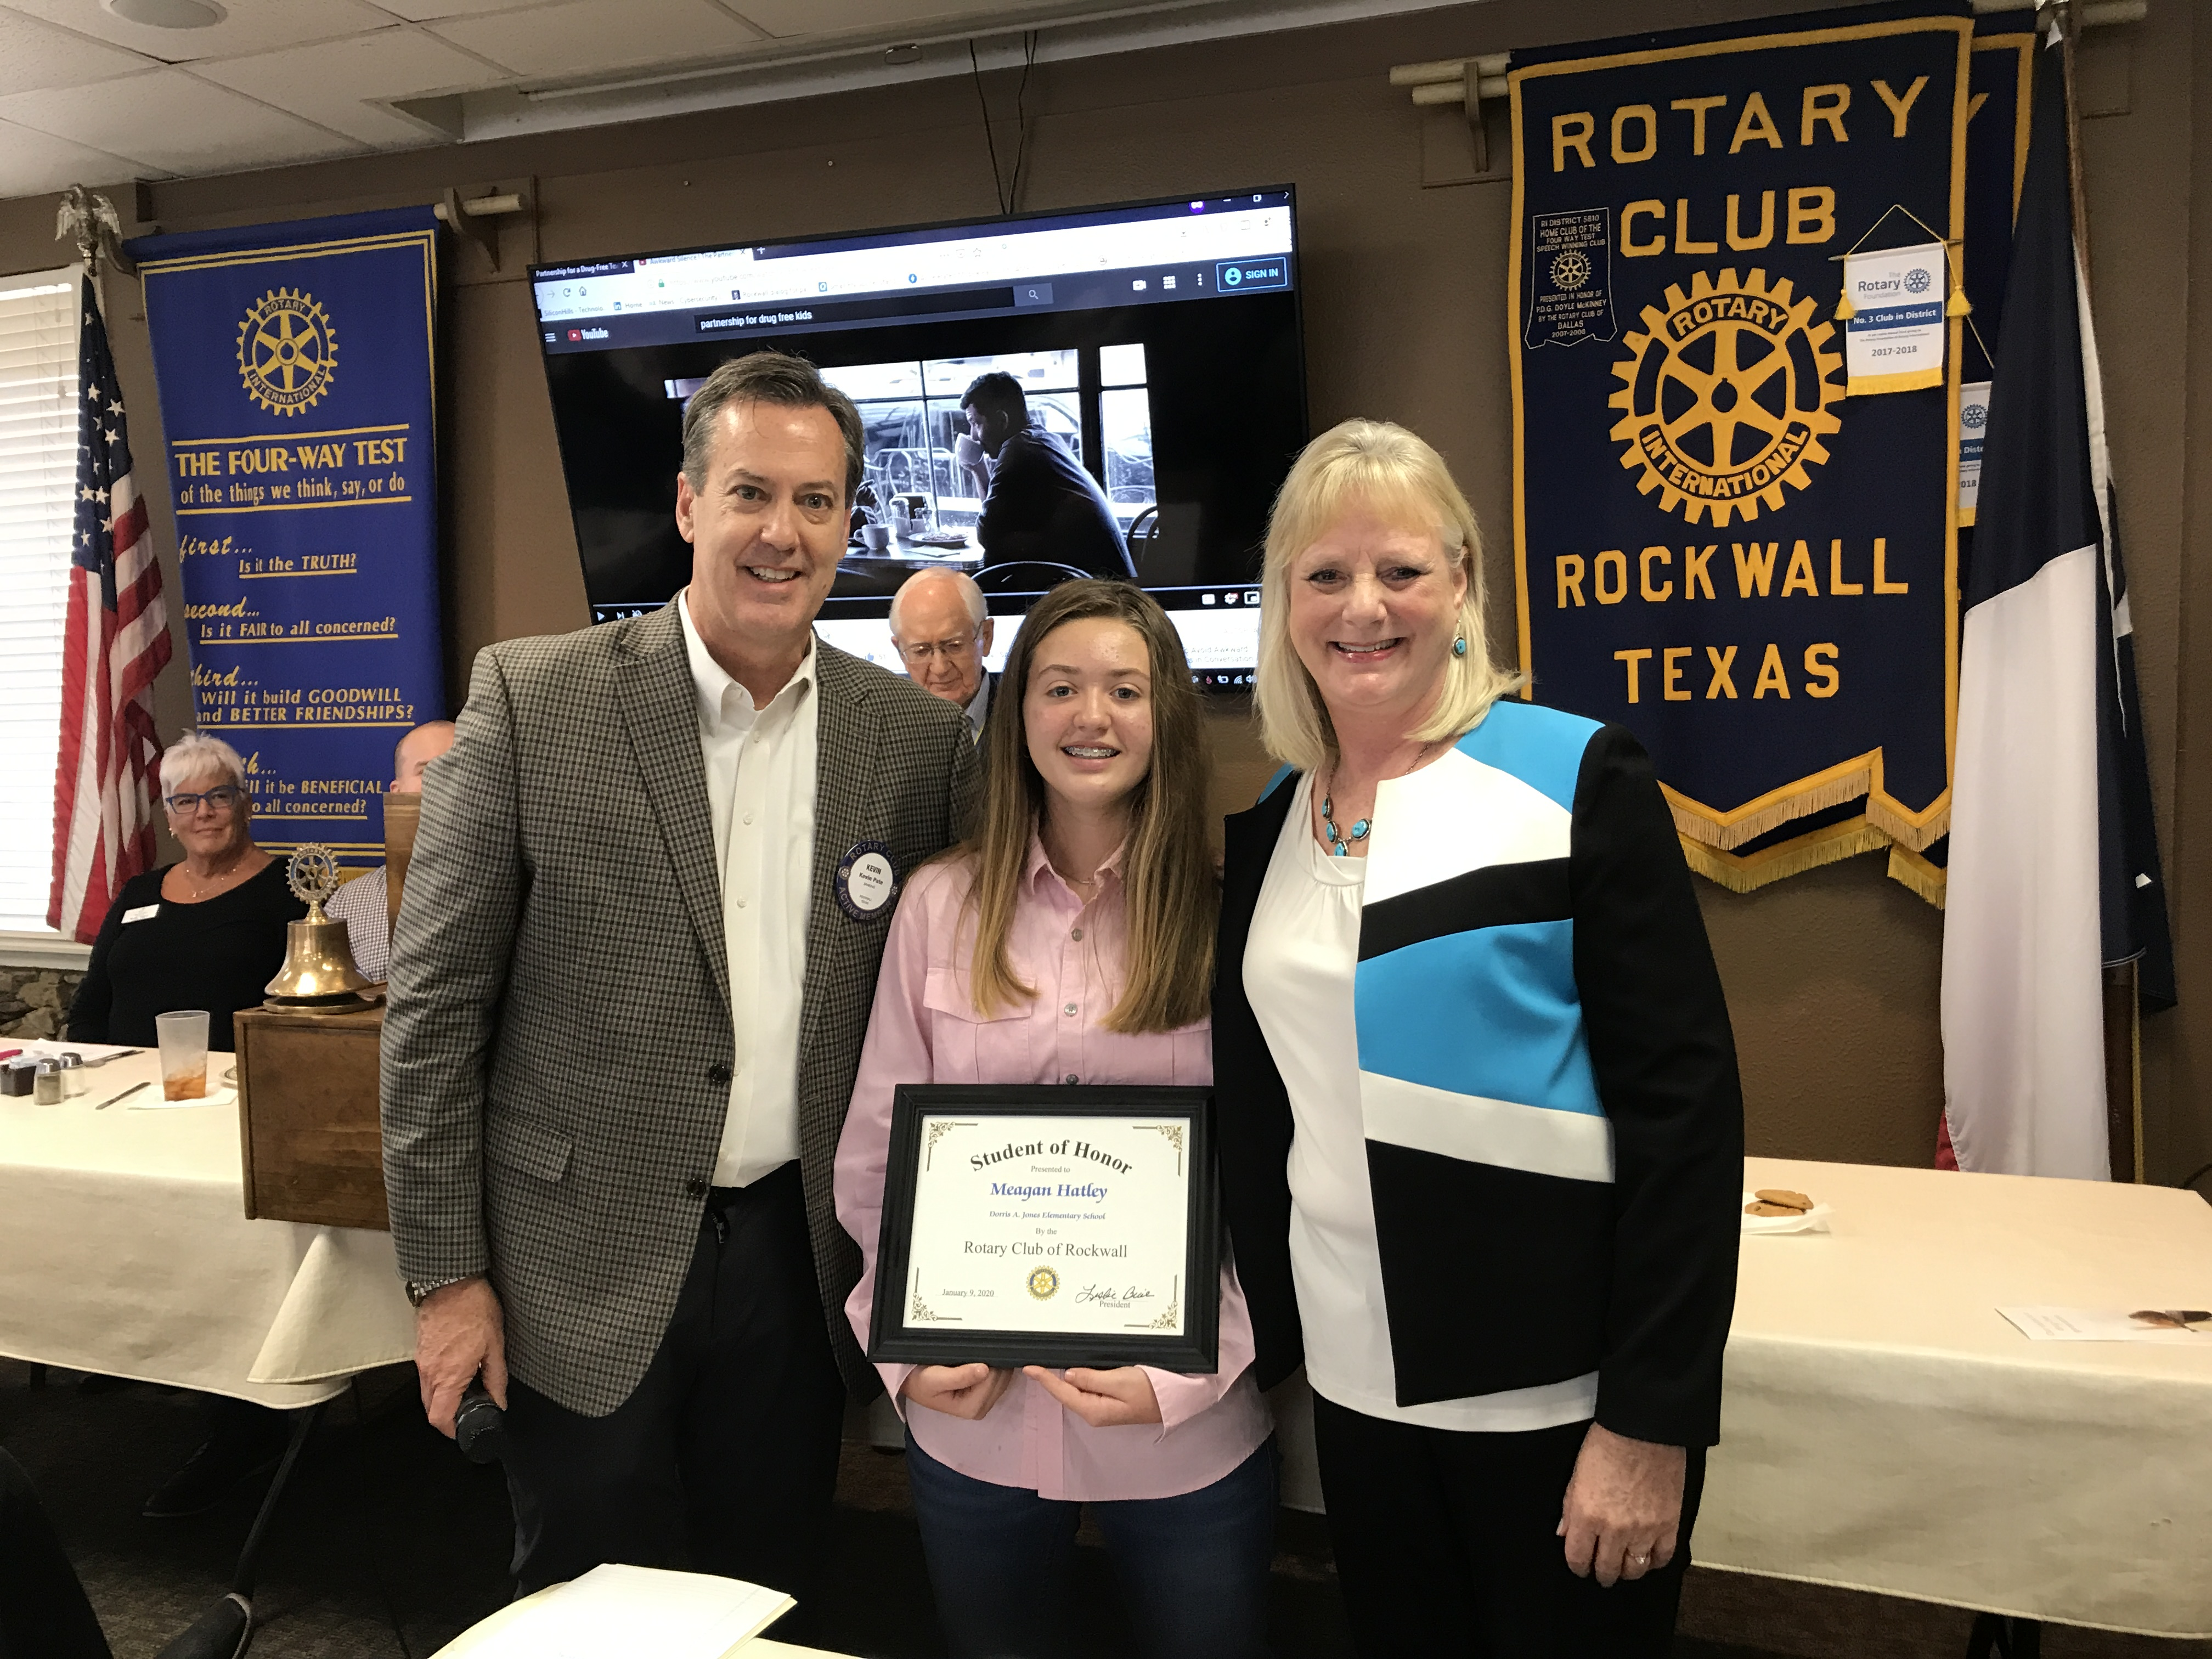 rotary student of honor